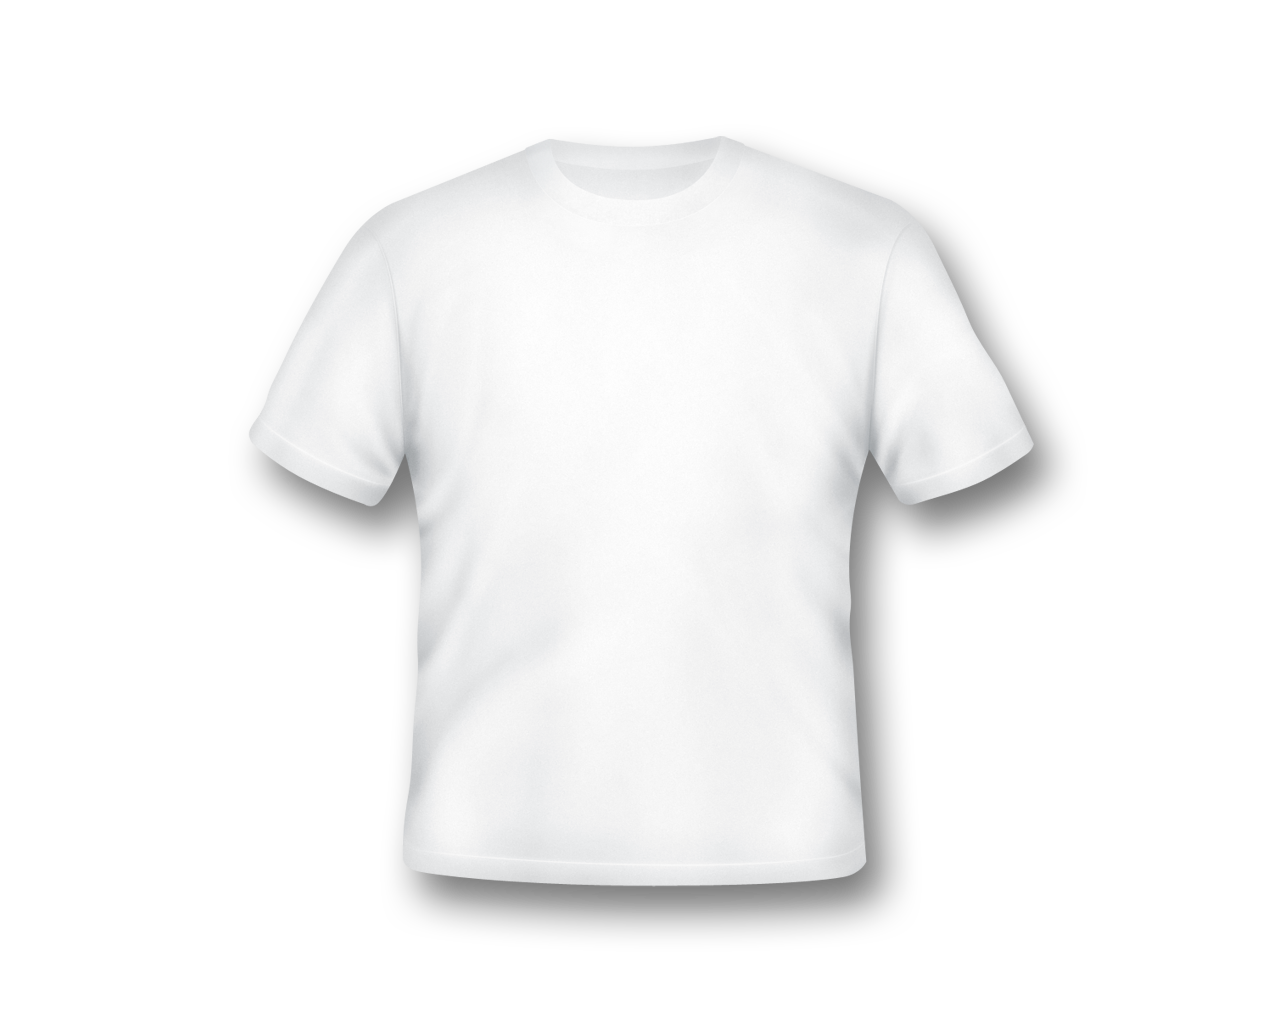 Blank White T-Shirt Template PNG Image